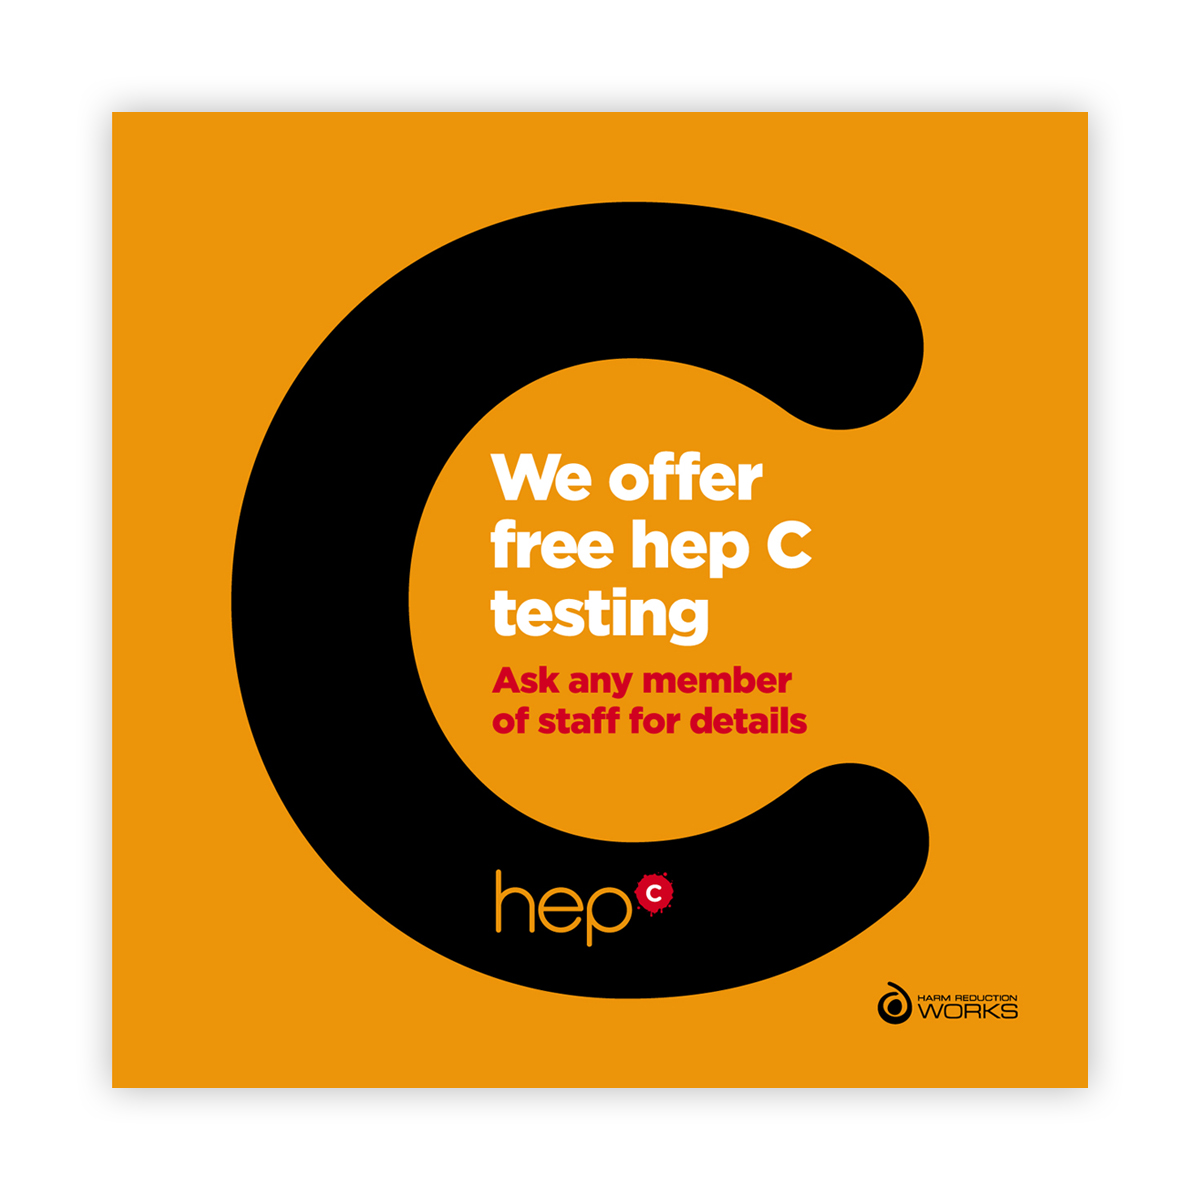 Hep C campaign: we offer hep C testing sign